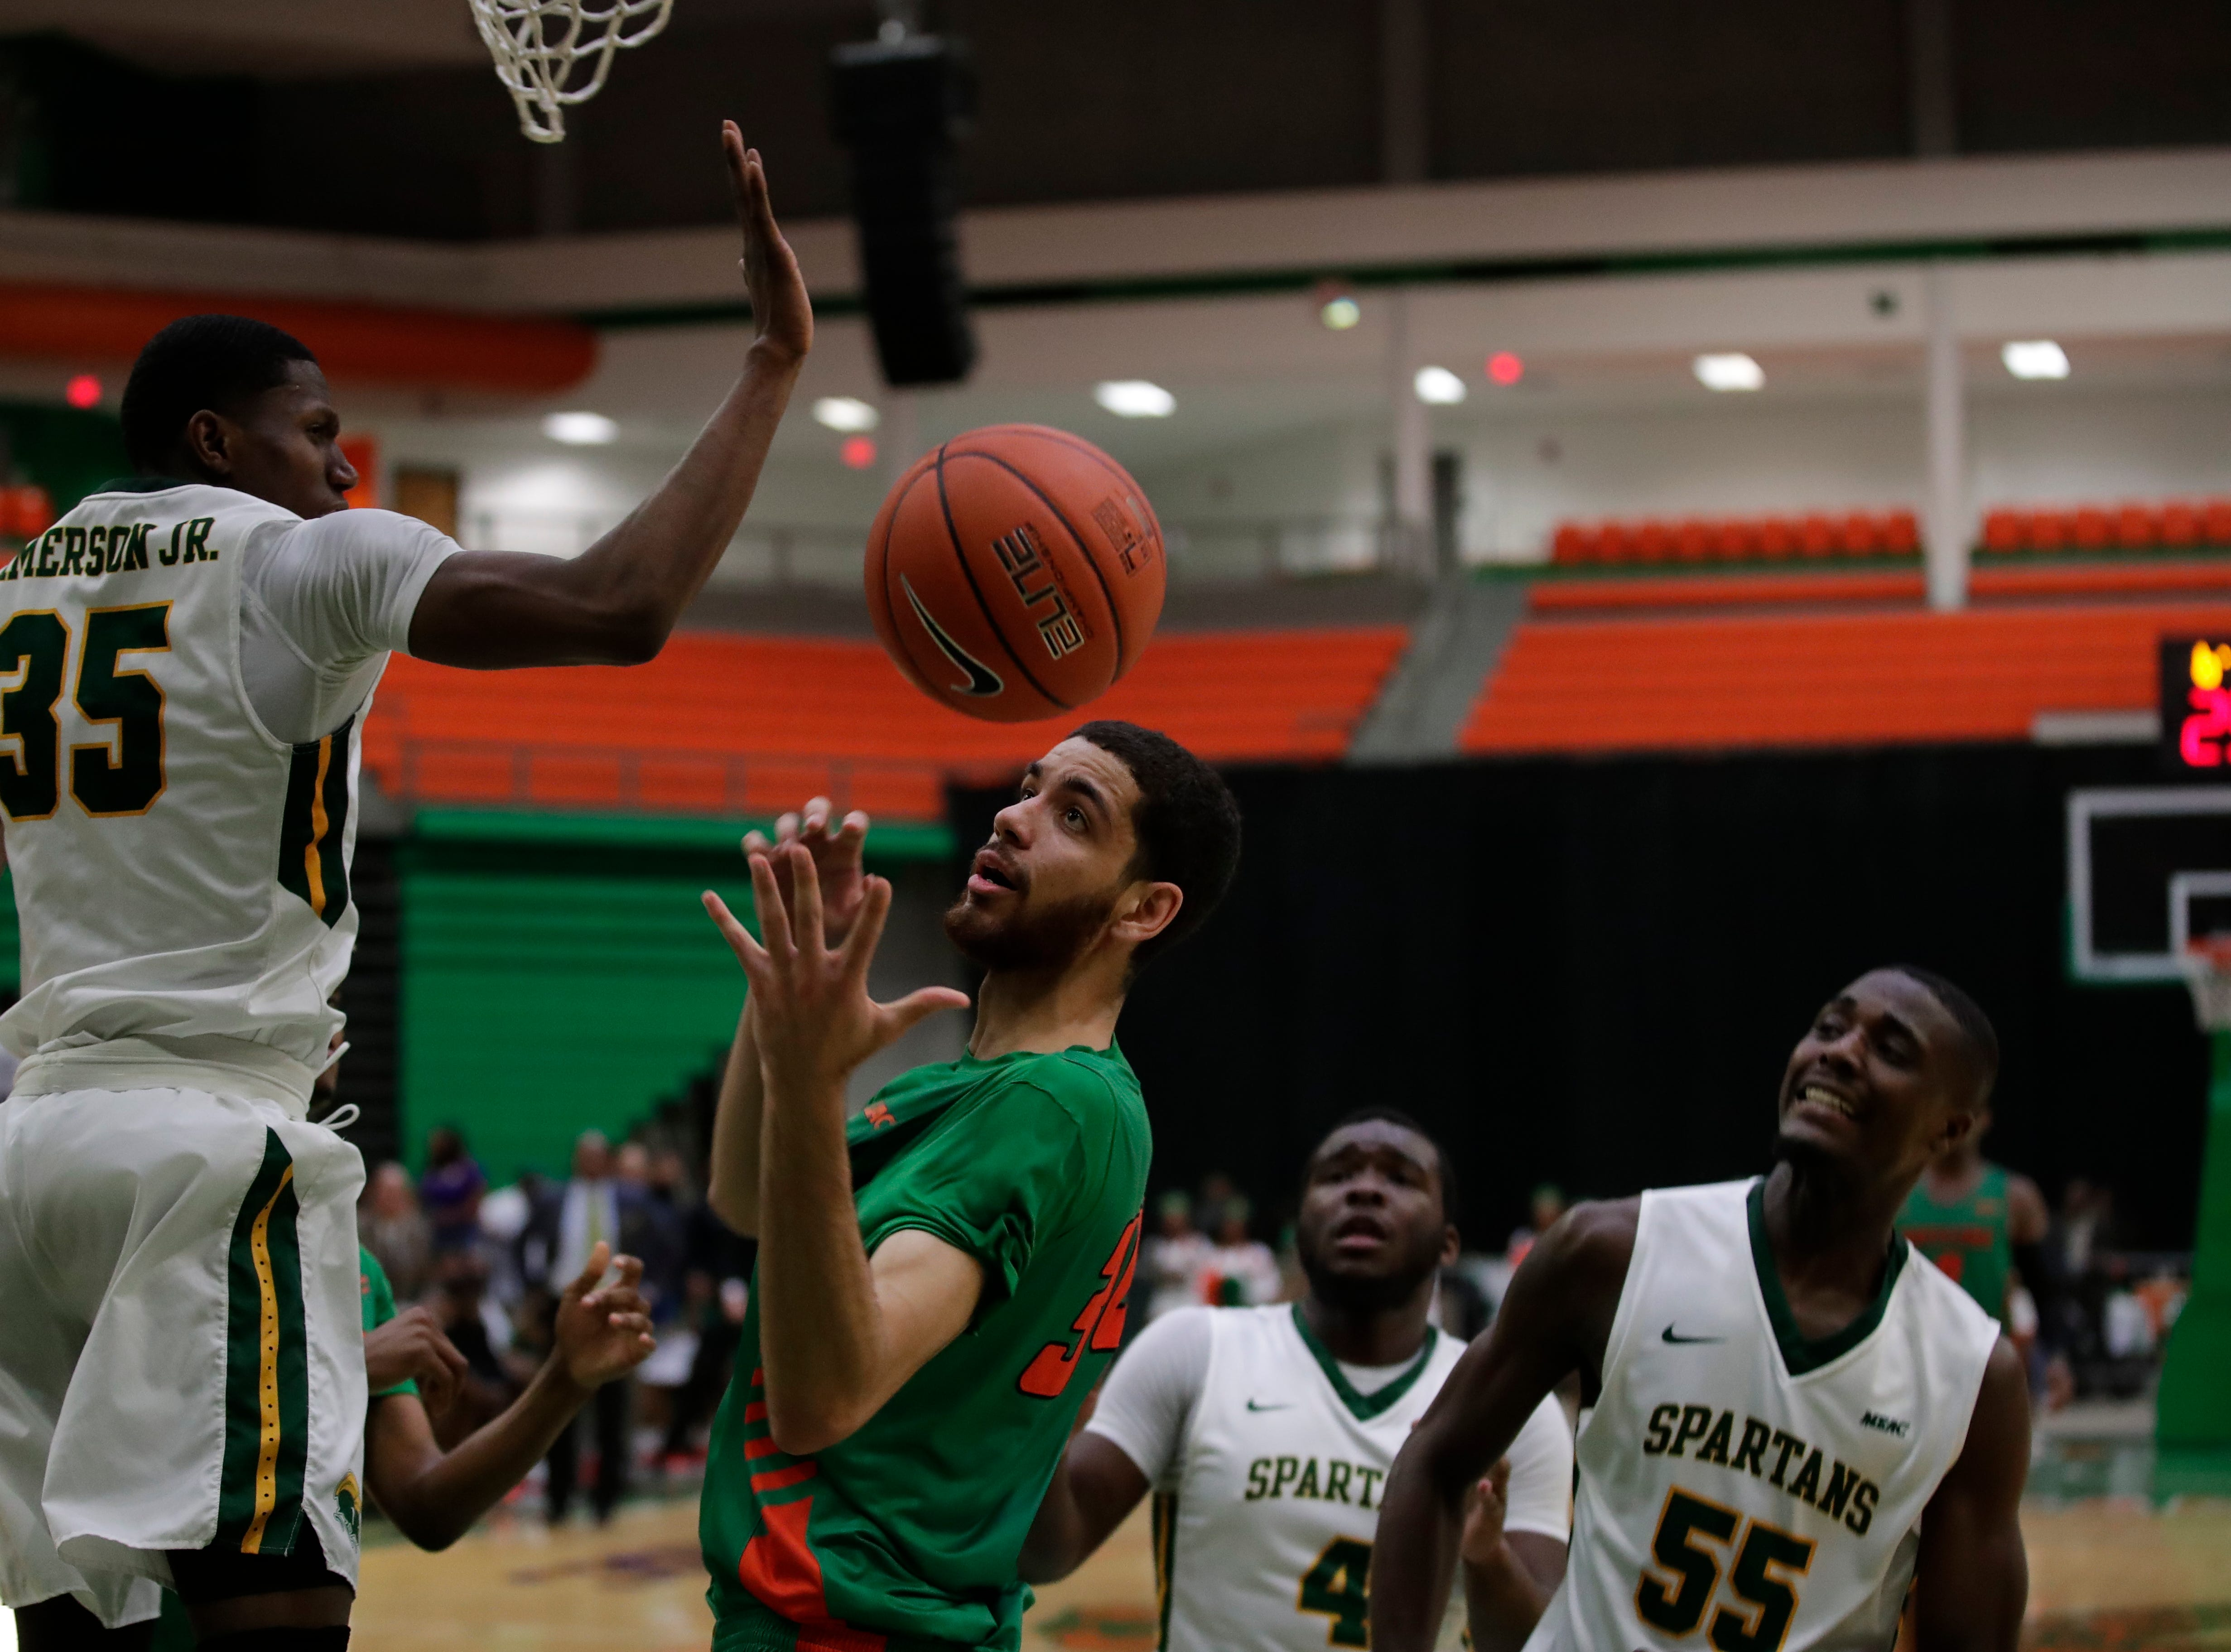 A rebound slips from the hands of Florida A&M Rattlers center Isaiah Martin (34) during a game between FAMU and Norfolk State at the Alfred Lawson Jr. Multipurpose Center Monday, Feb. 11, 2019.